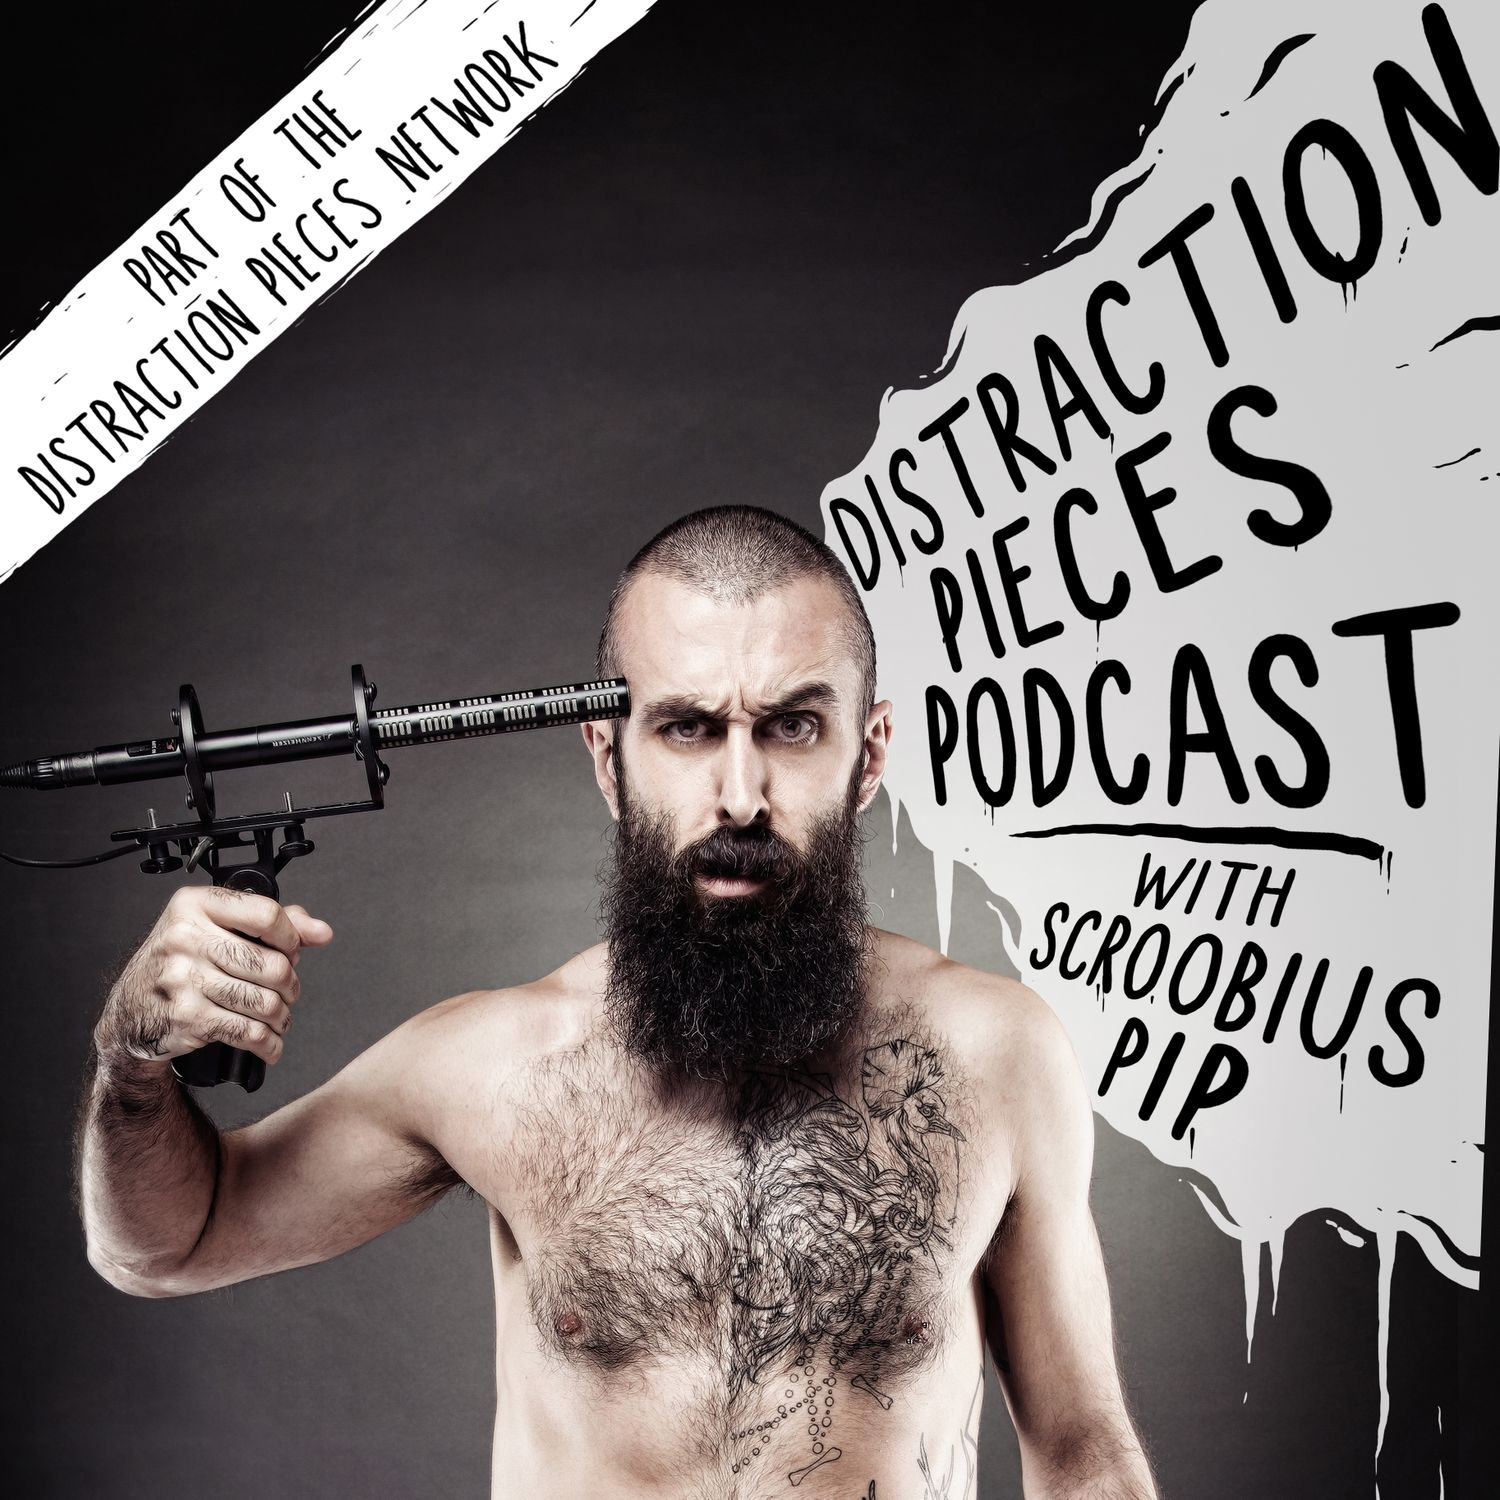 Distraction Pieces Podcast with Scroobius Pip